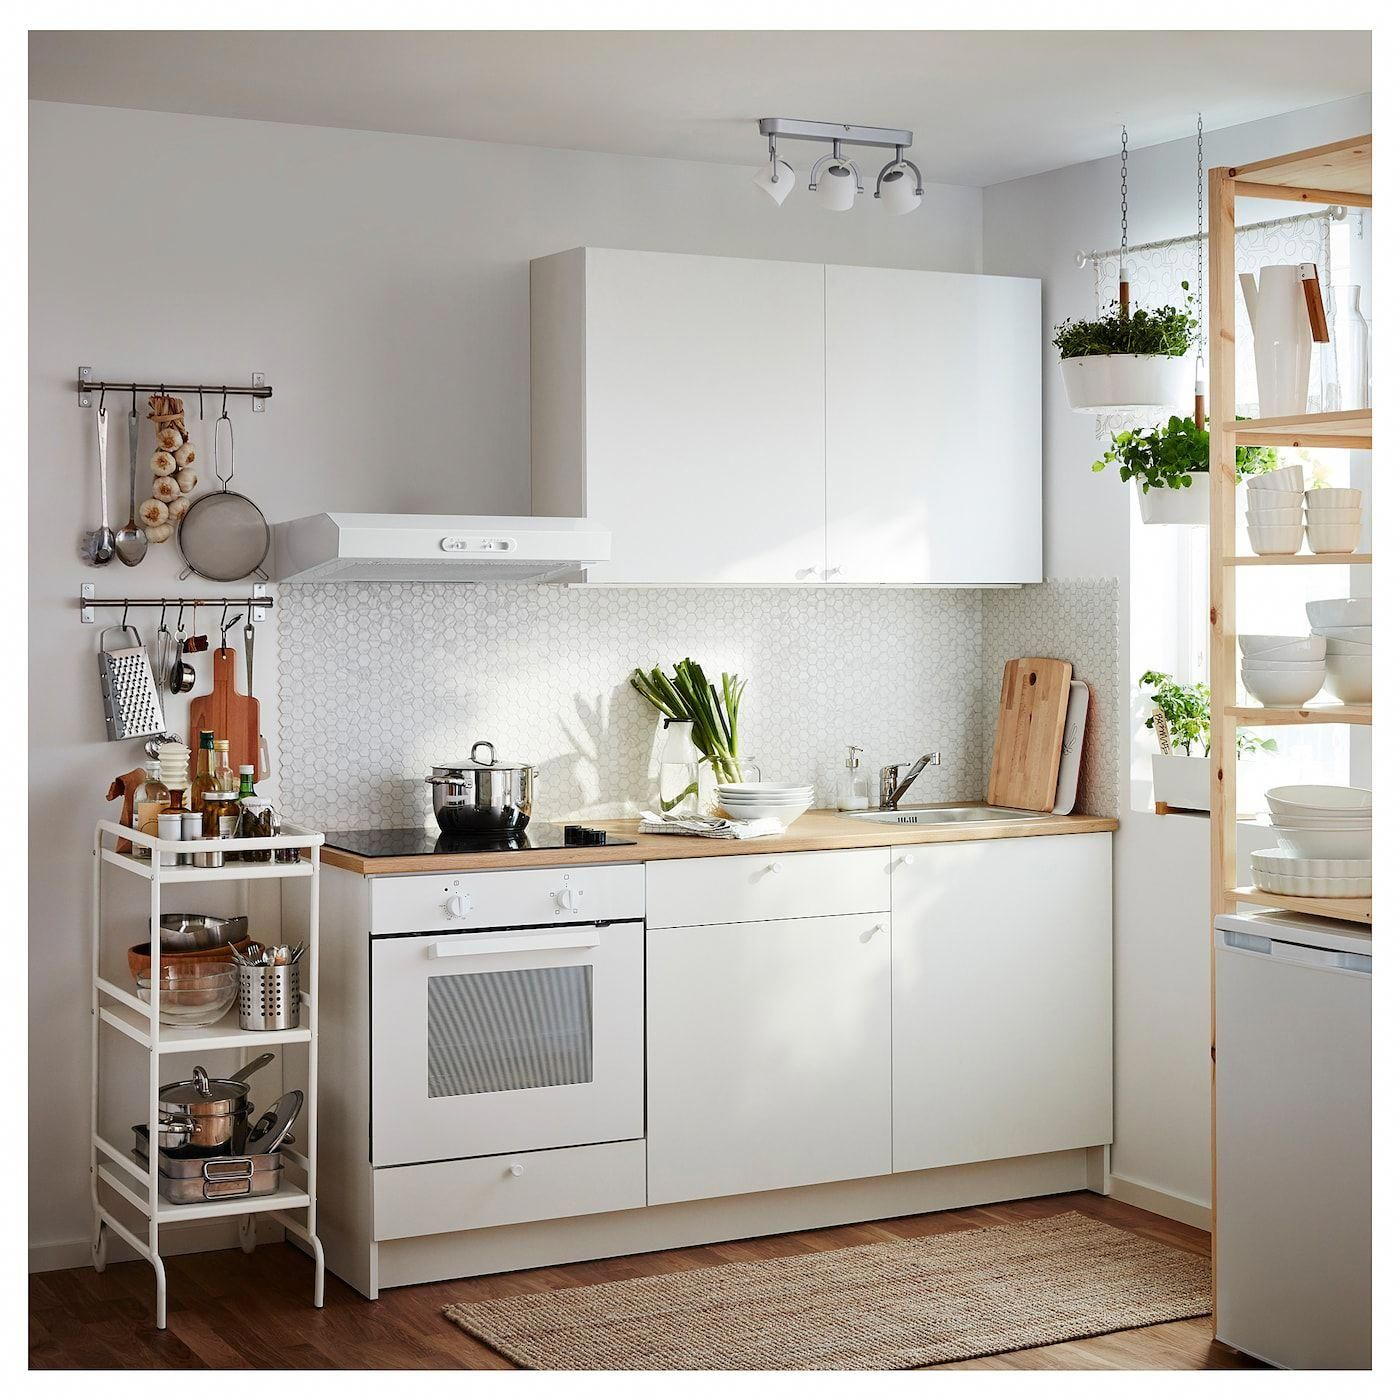 Unterschrank Küche Ikea Knoxhult Base Cabinet With Doors And Drawer - White - Ikea #kitchendoors | Kleine Weiße Küchen, Knoxhult Ikea, Ikea